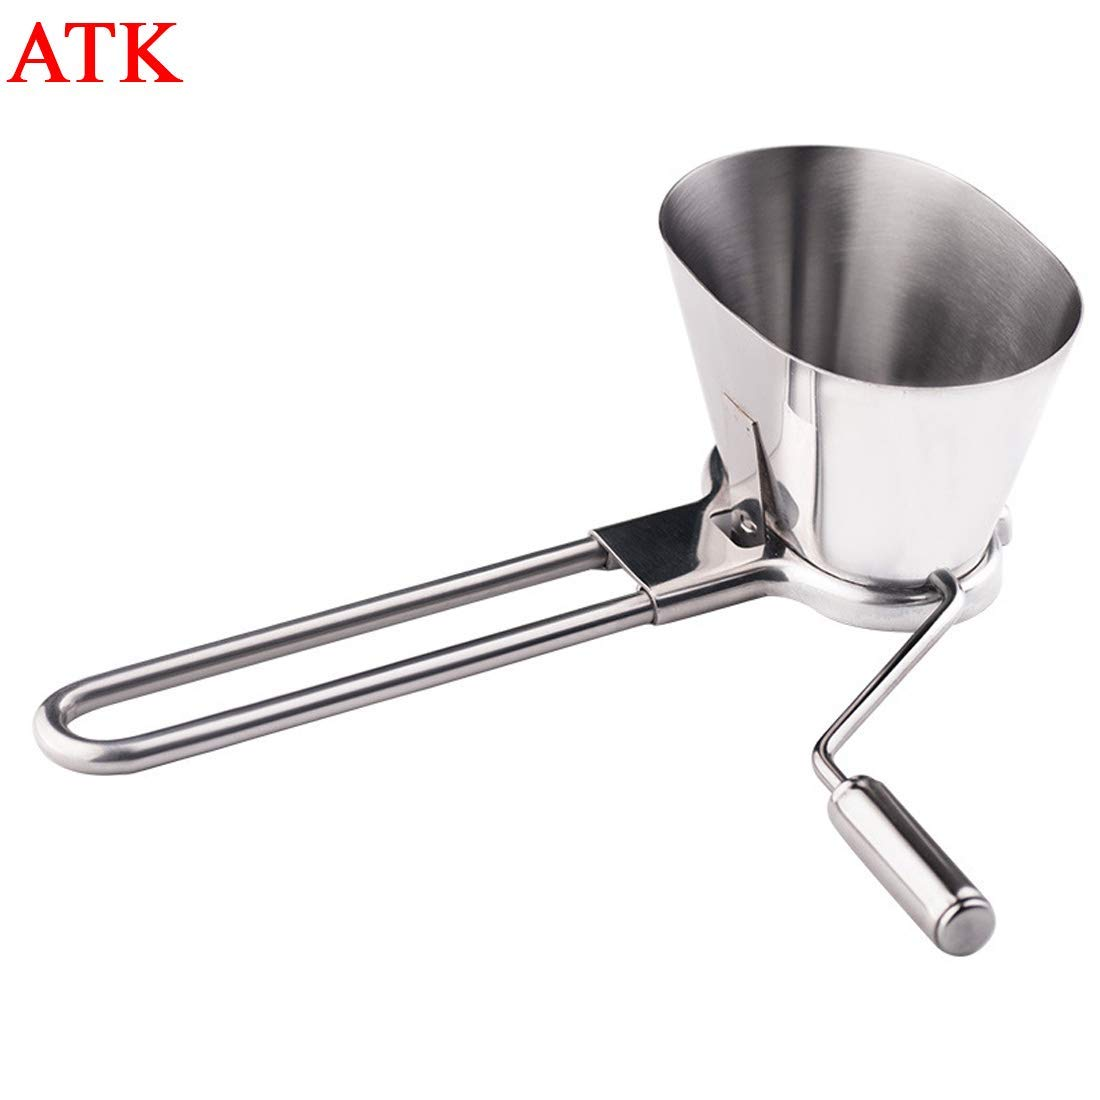 ATK Stainless Steel Rotary Herb Mill and Mint Cutter, Vegetables Chopper,Manual Coriander Shredder Parsley Chopper, Onion Grinder, Multi-functional Mincer, Silver Color